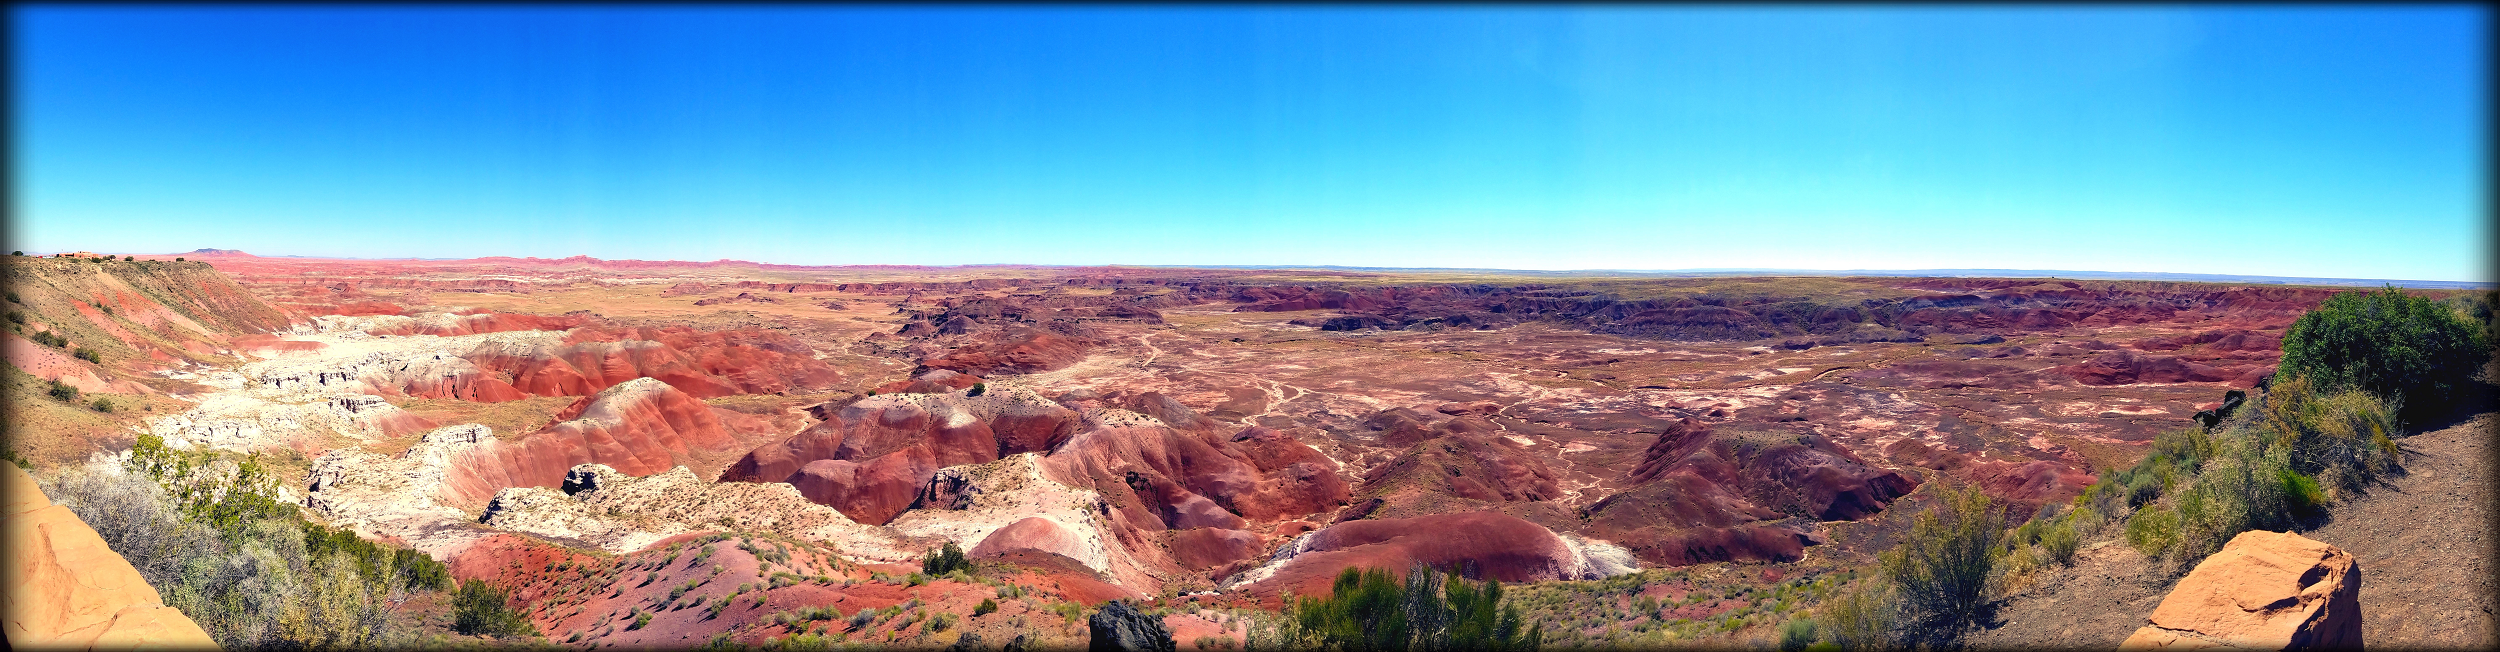 Painted Desert _ Beauty_web